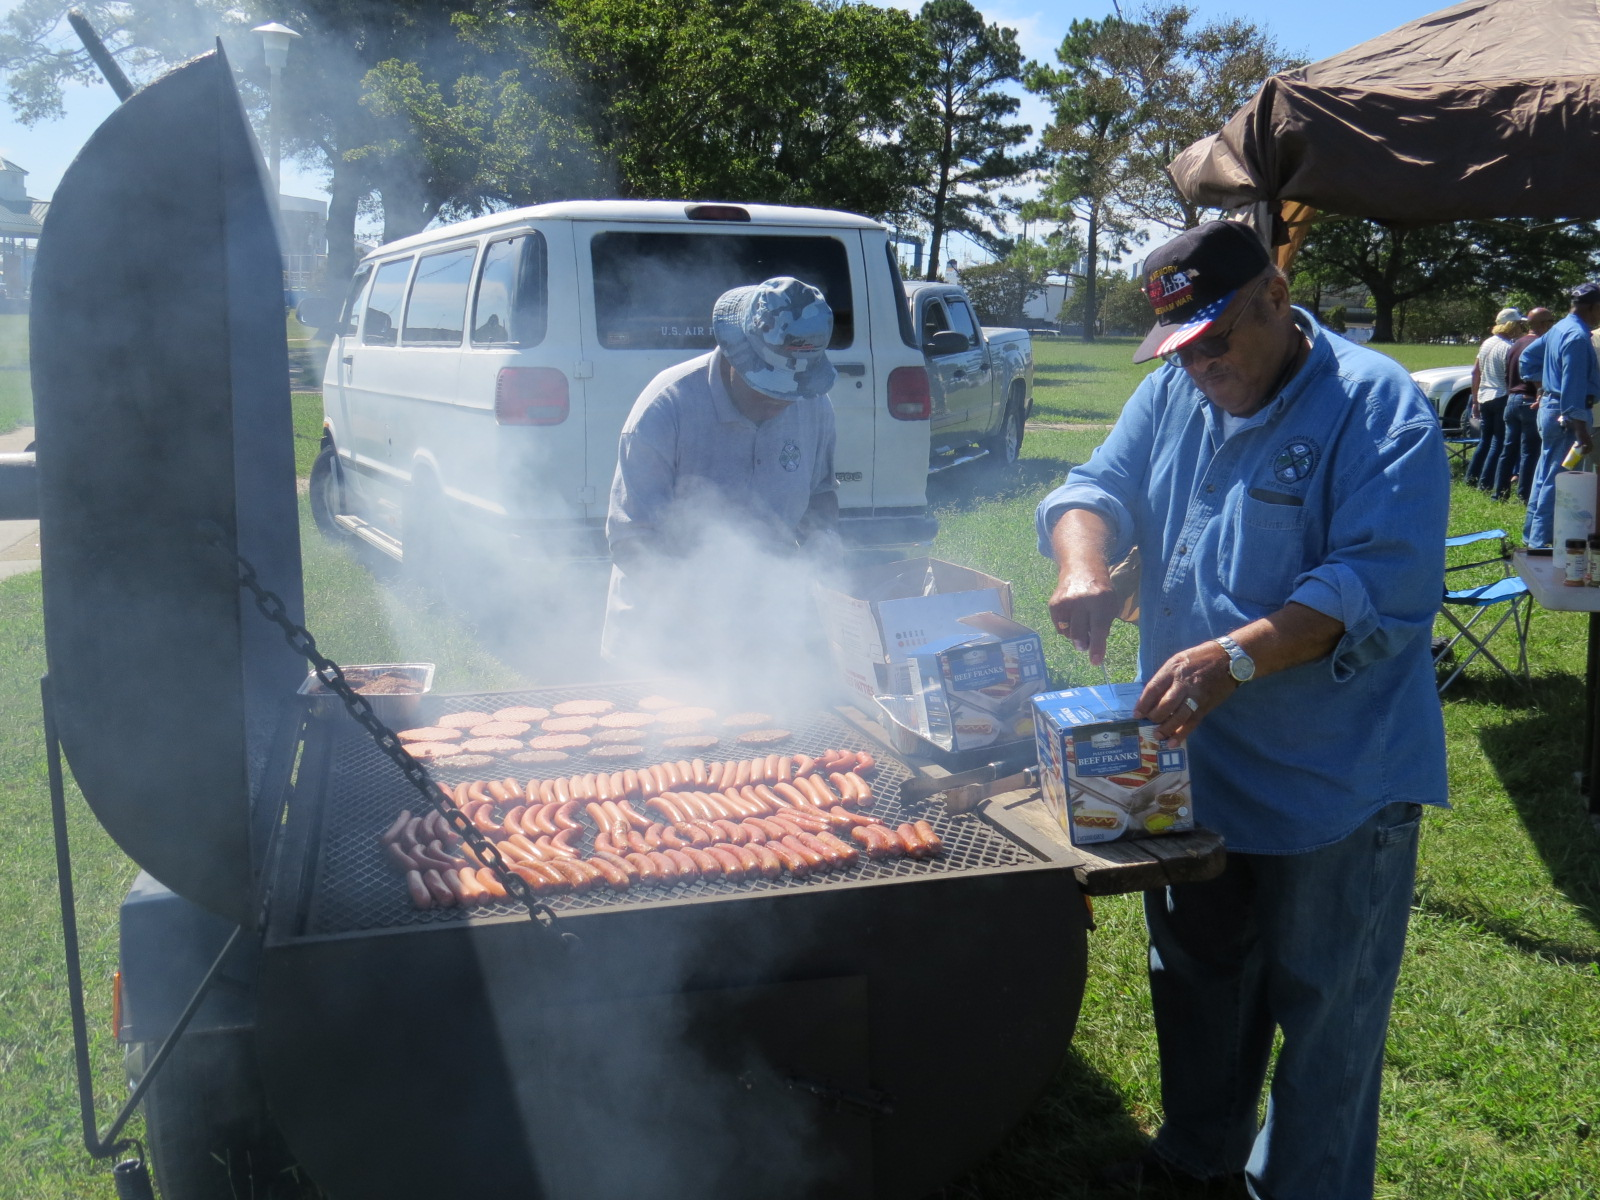 Grilling to serve the People at 2017 Family Day